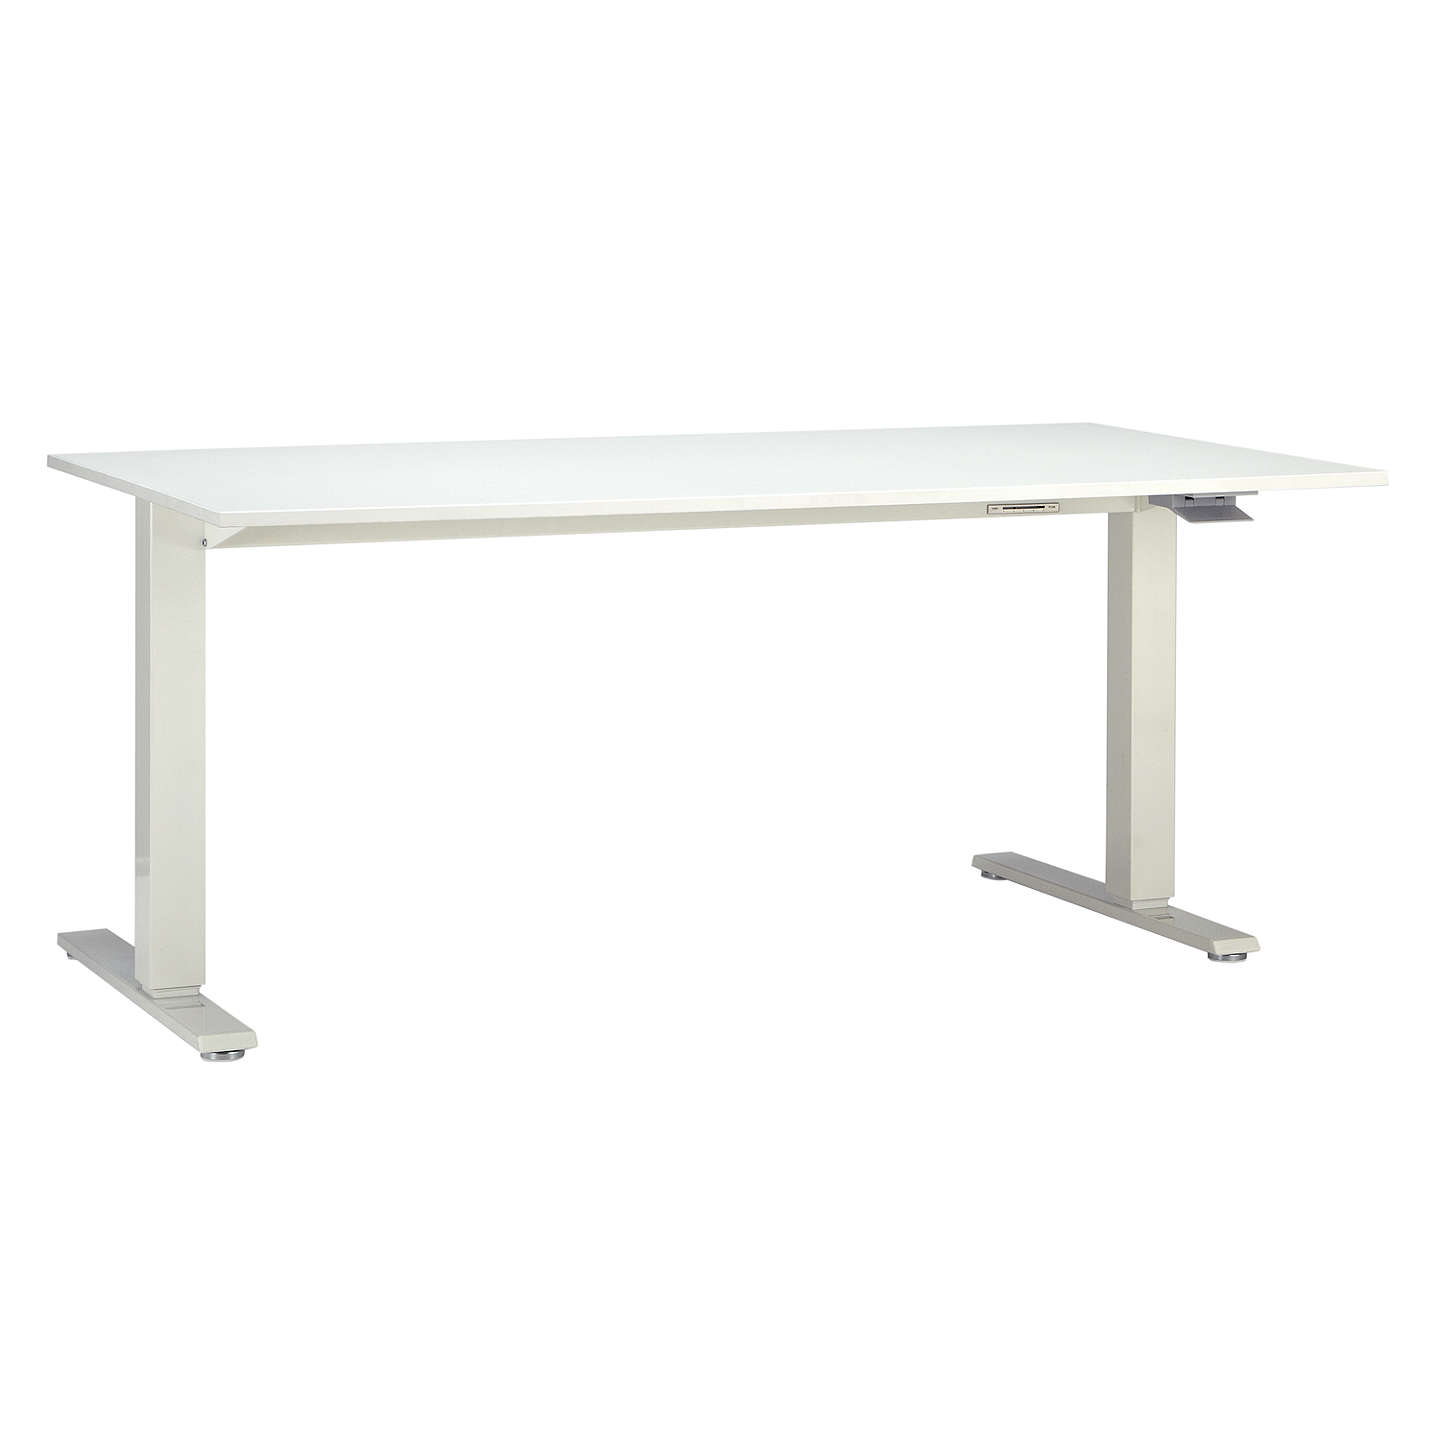 sba height conset desk adjustable mimek